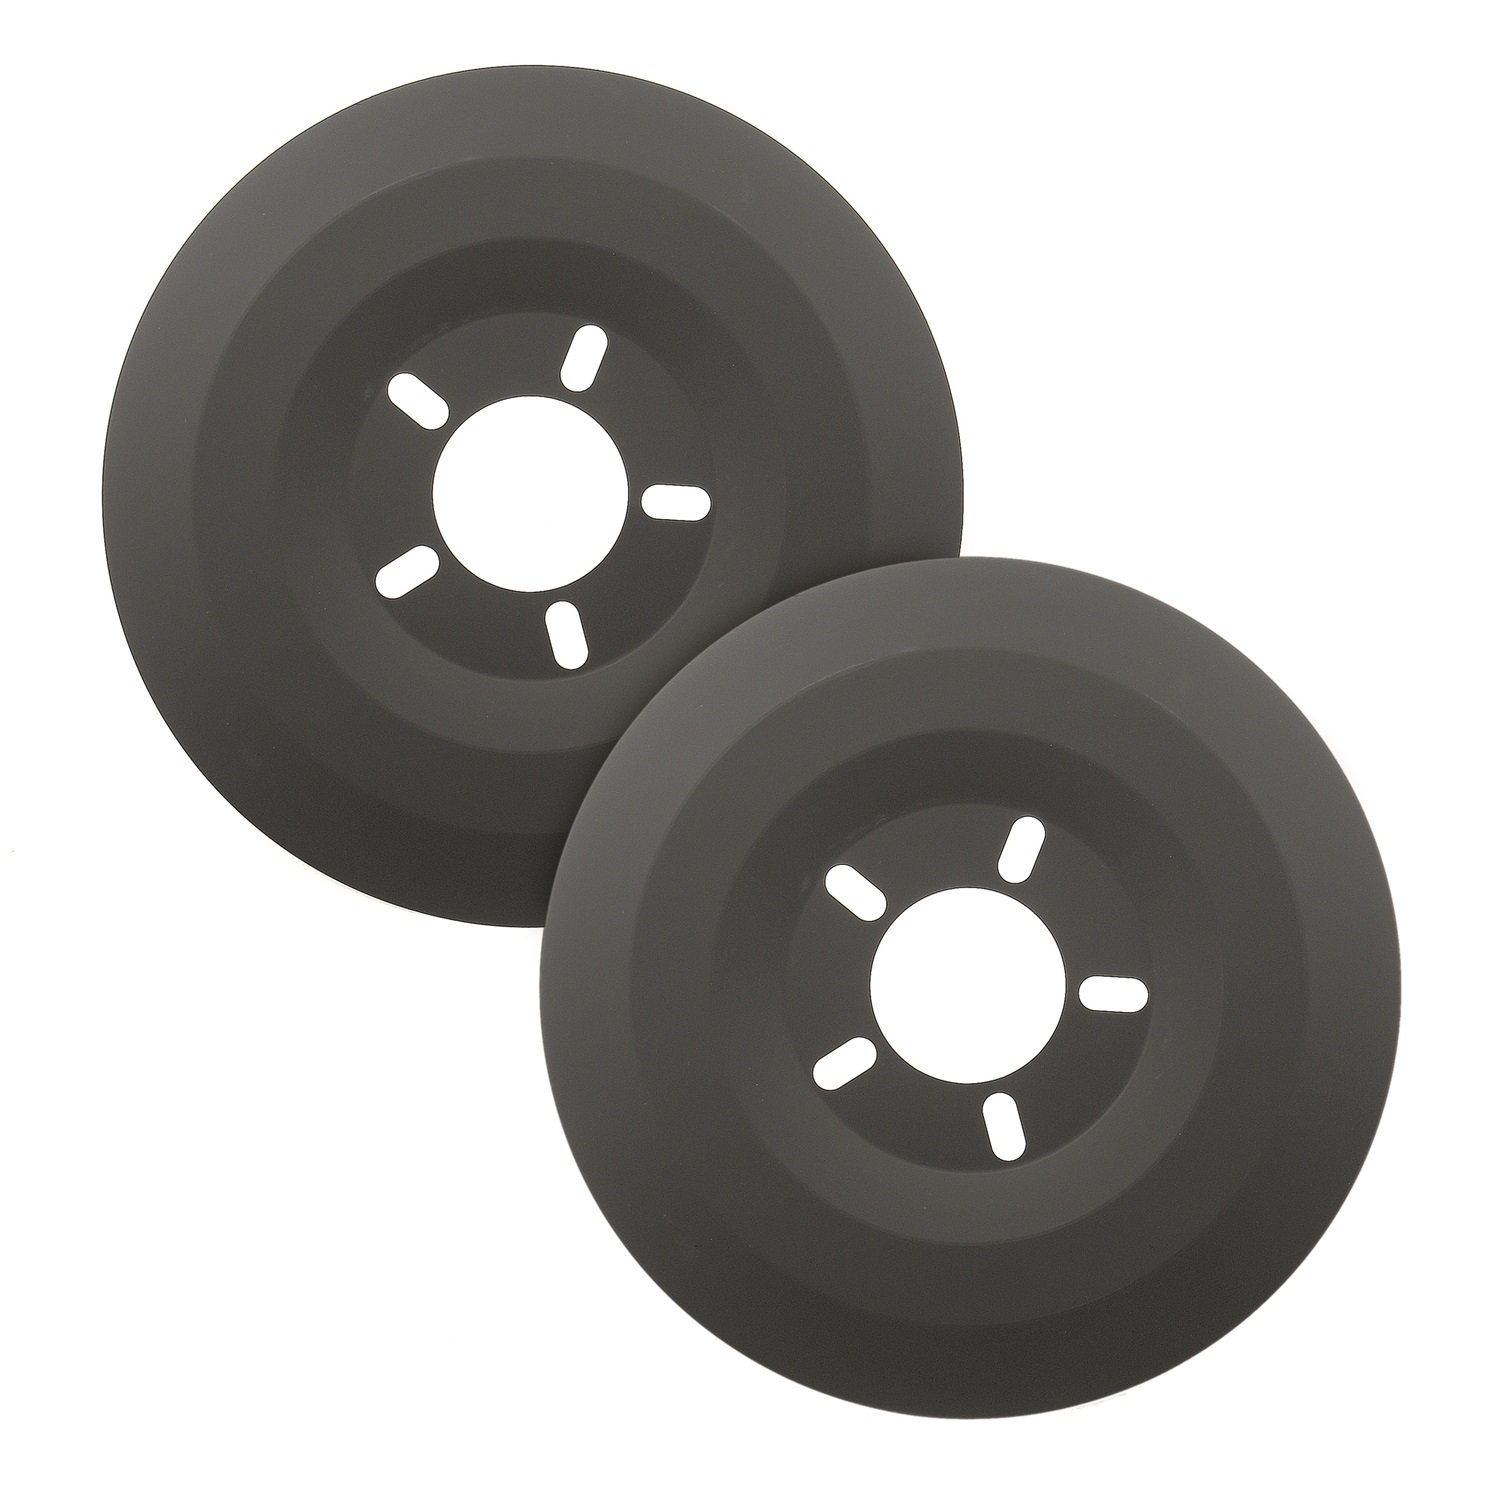 Mr. Gasket 6905 Wheel Dust Shield - Measures 15-Inches